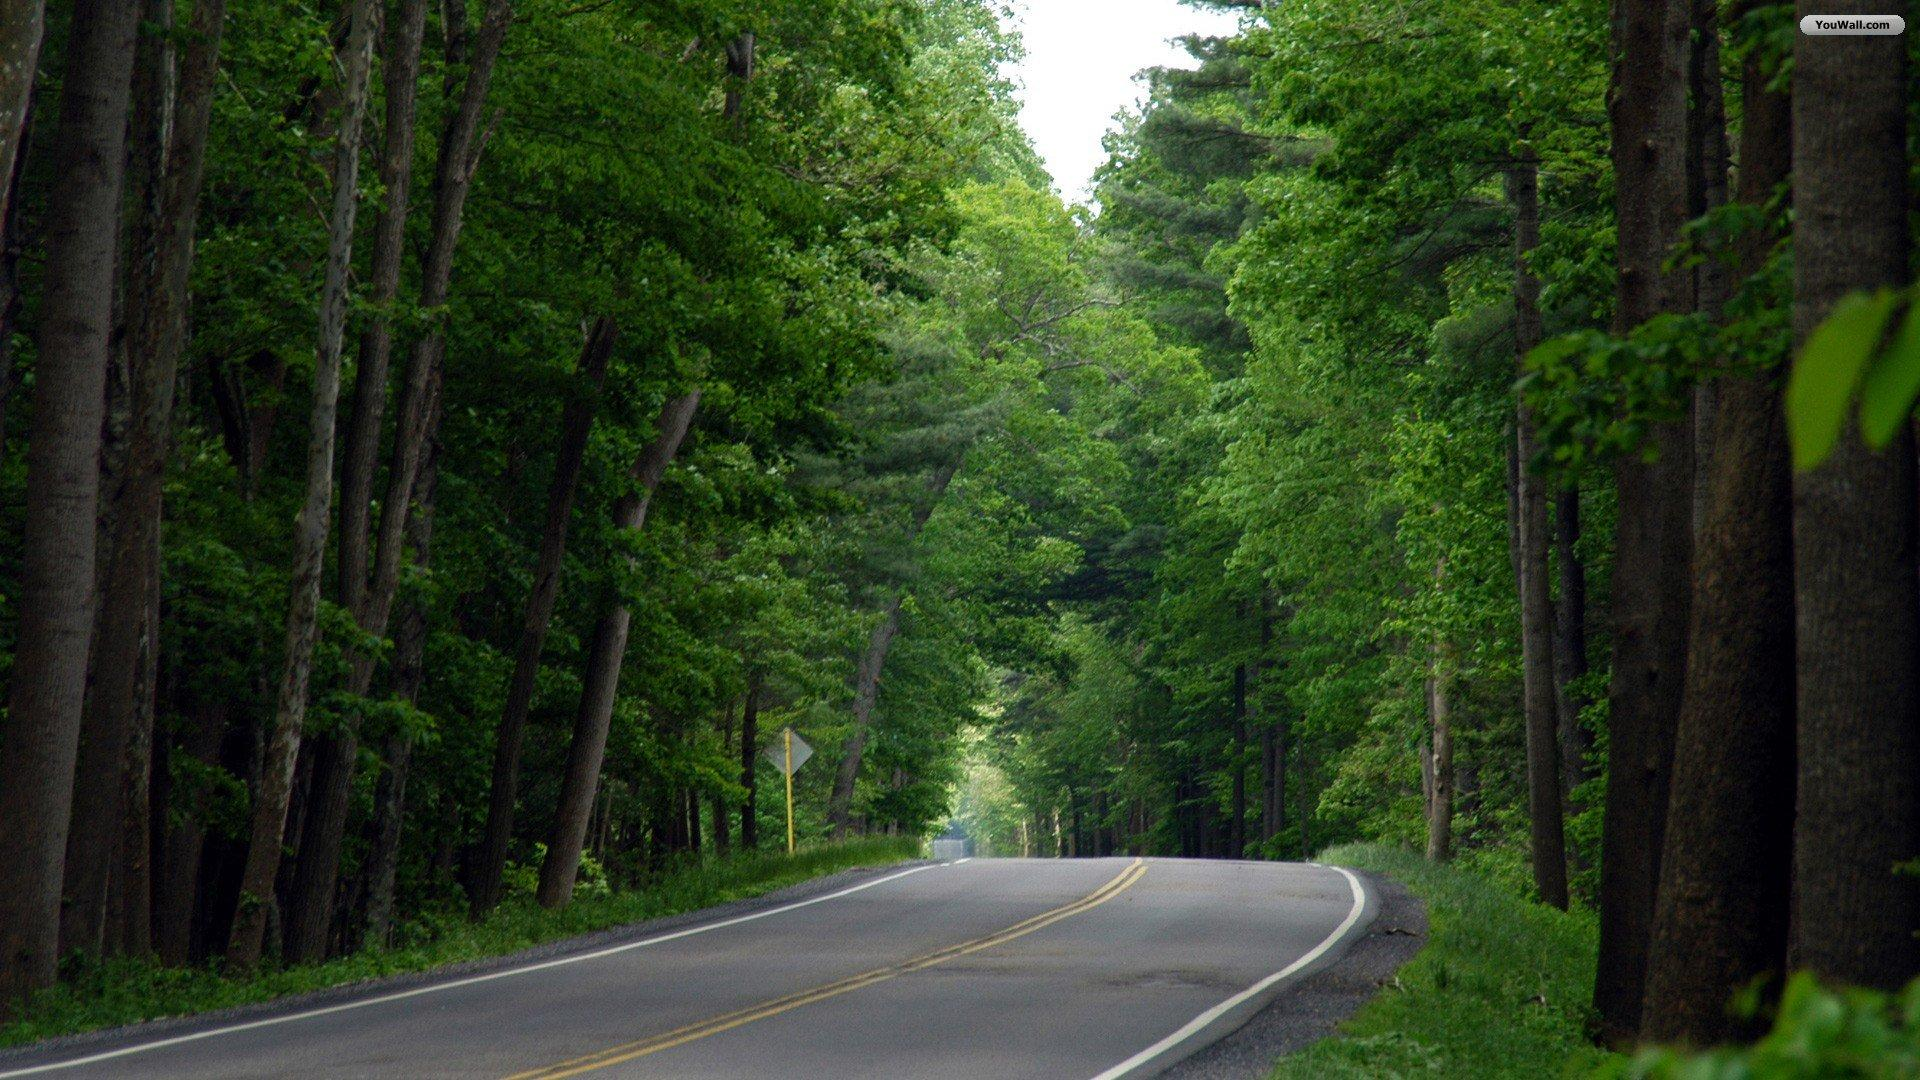 Road Over Forest Hd Wallpapers Windows 8 Perfect Hd